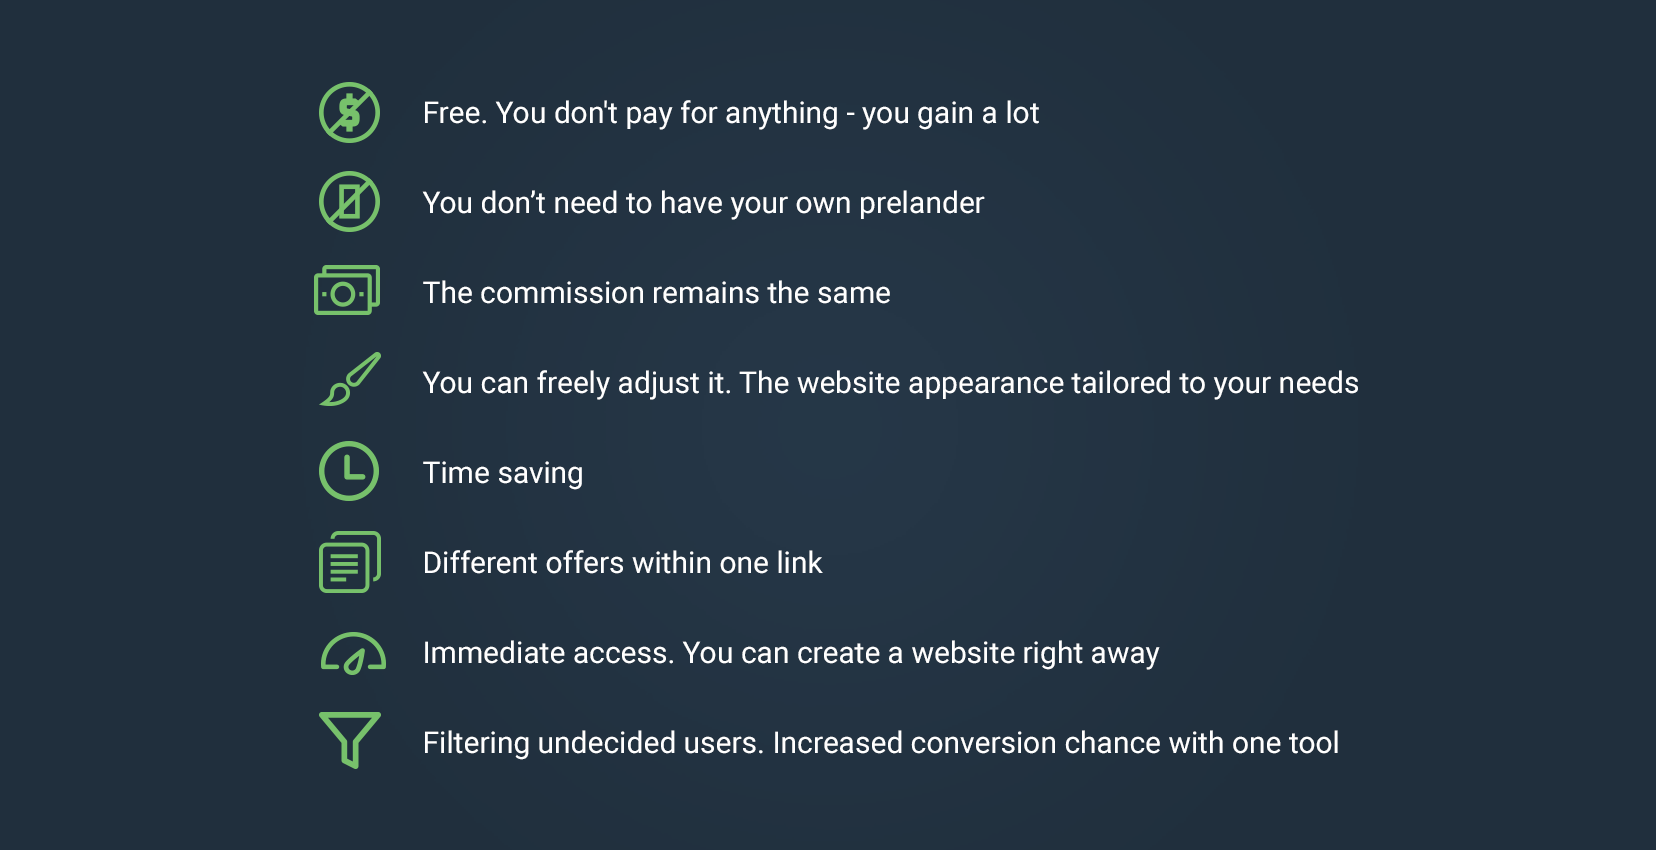 Advantages of the offers page